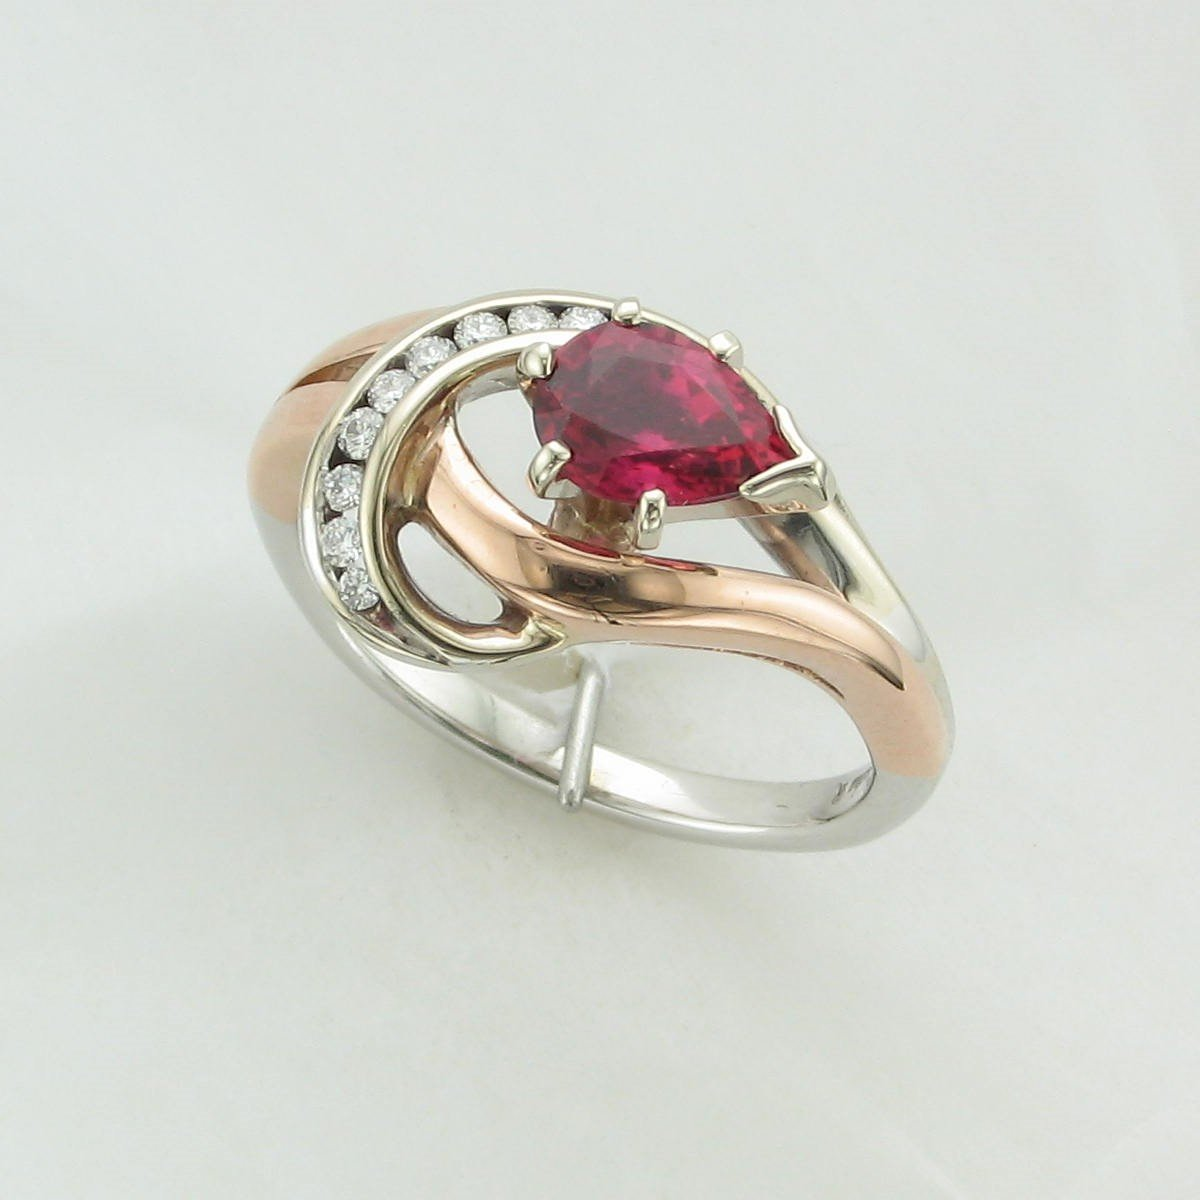 0.96ct Pink Tourmaline & Diamond Ring set in 14K Two-Tone White Gold and Rose Gold